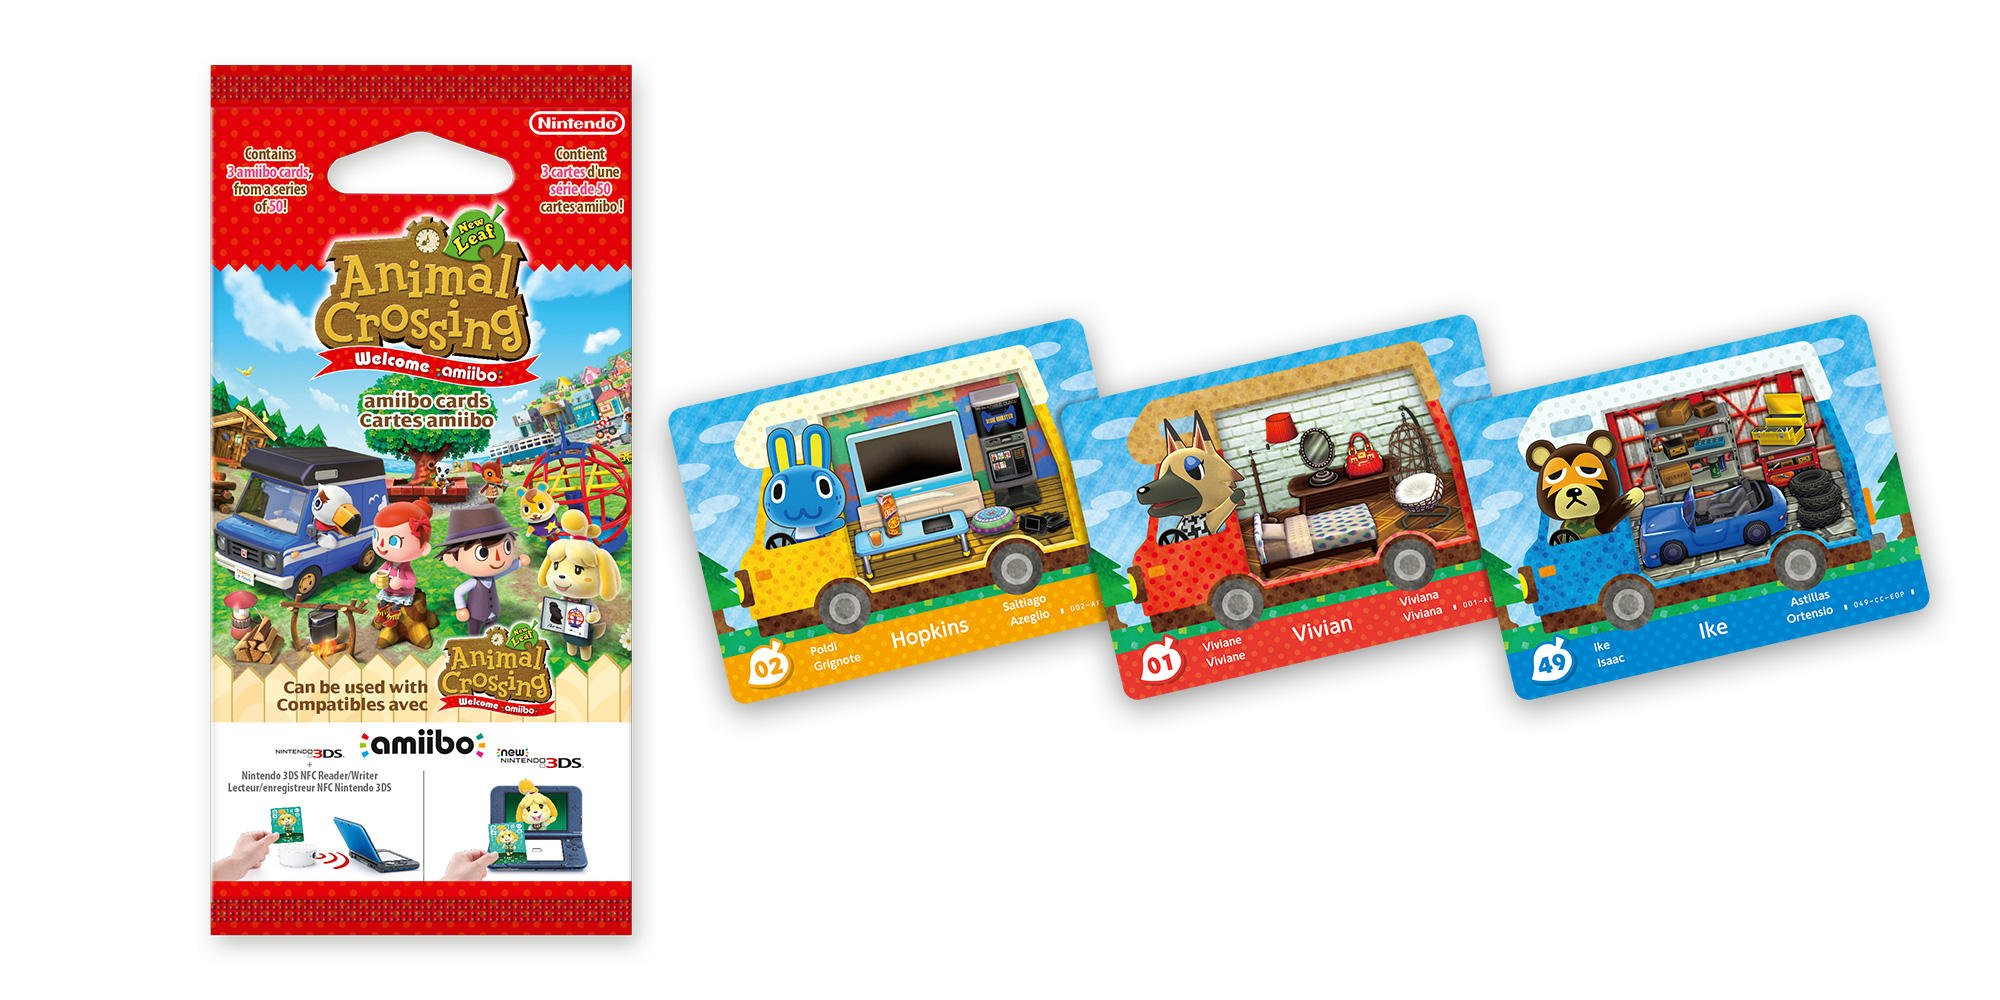 Amiibo Crossing N Direct Animal Crossing Direct Free Amiibo Update For Ac New